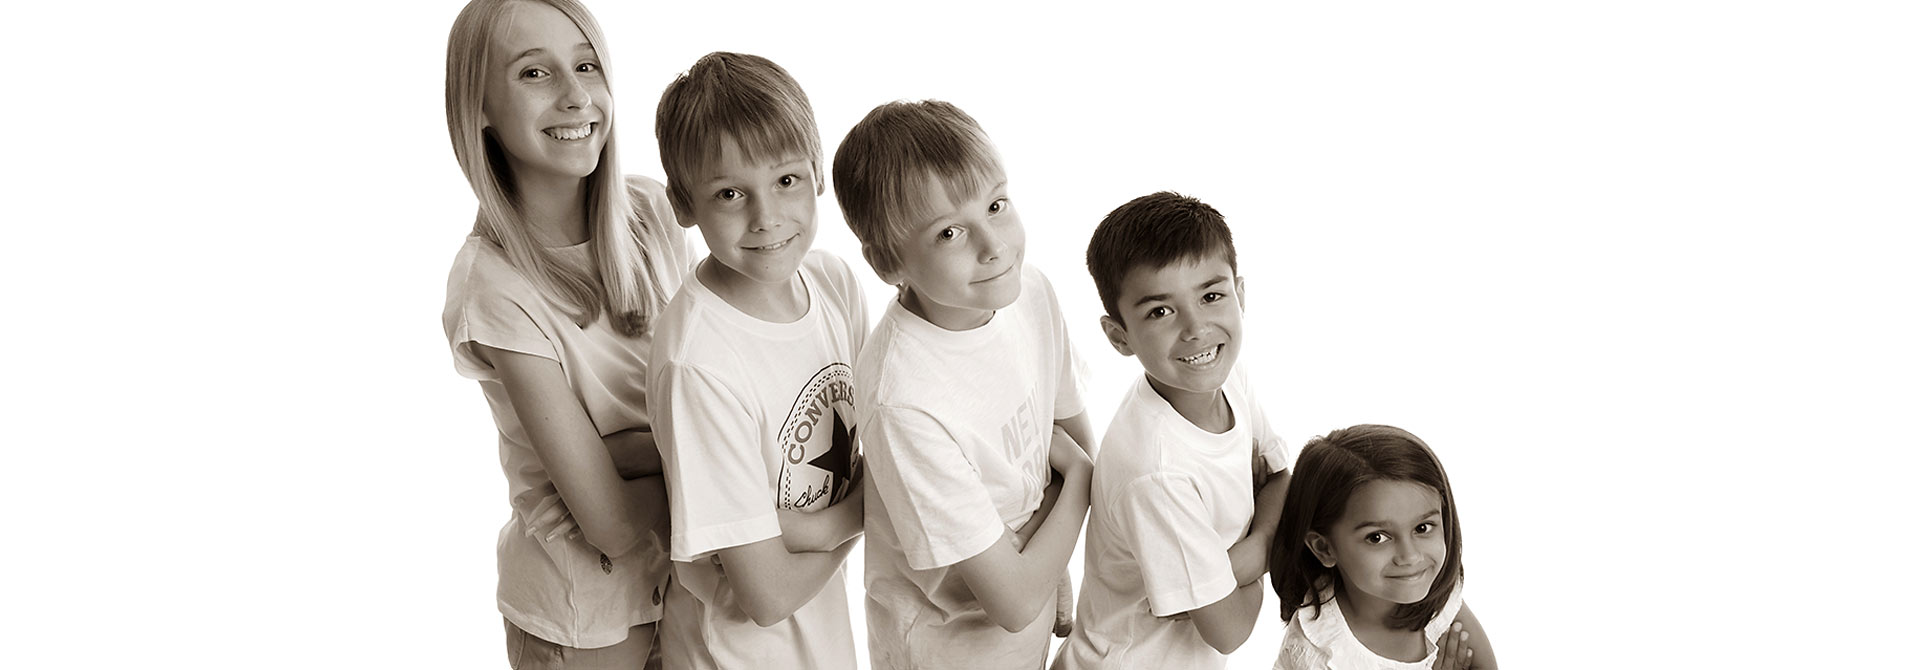 childrens-photographers-worcestershire-005x